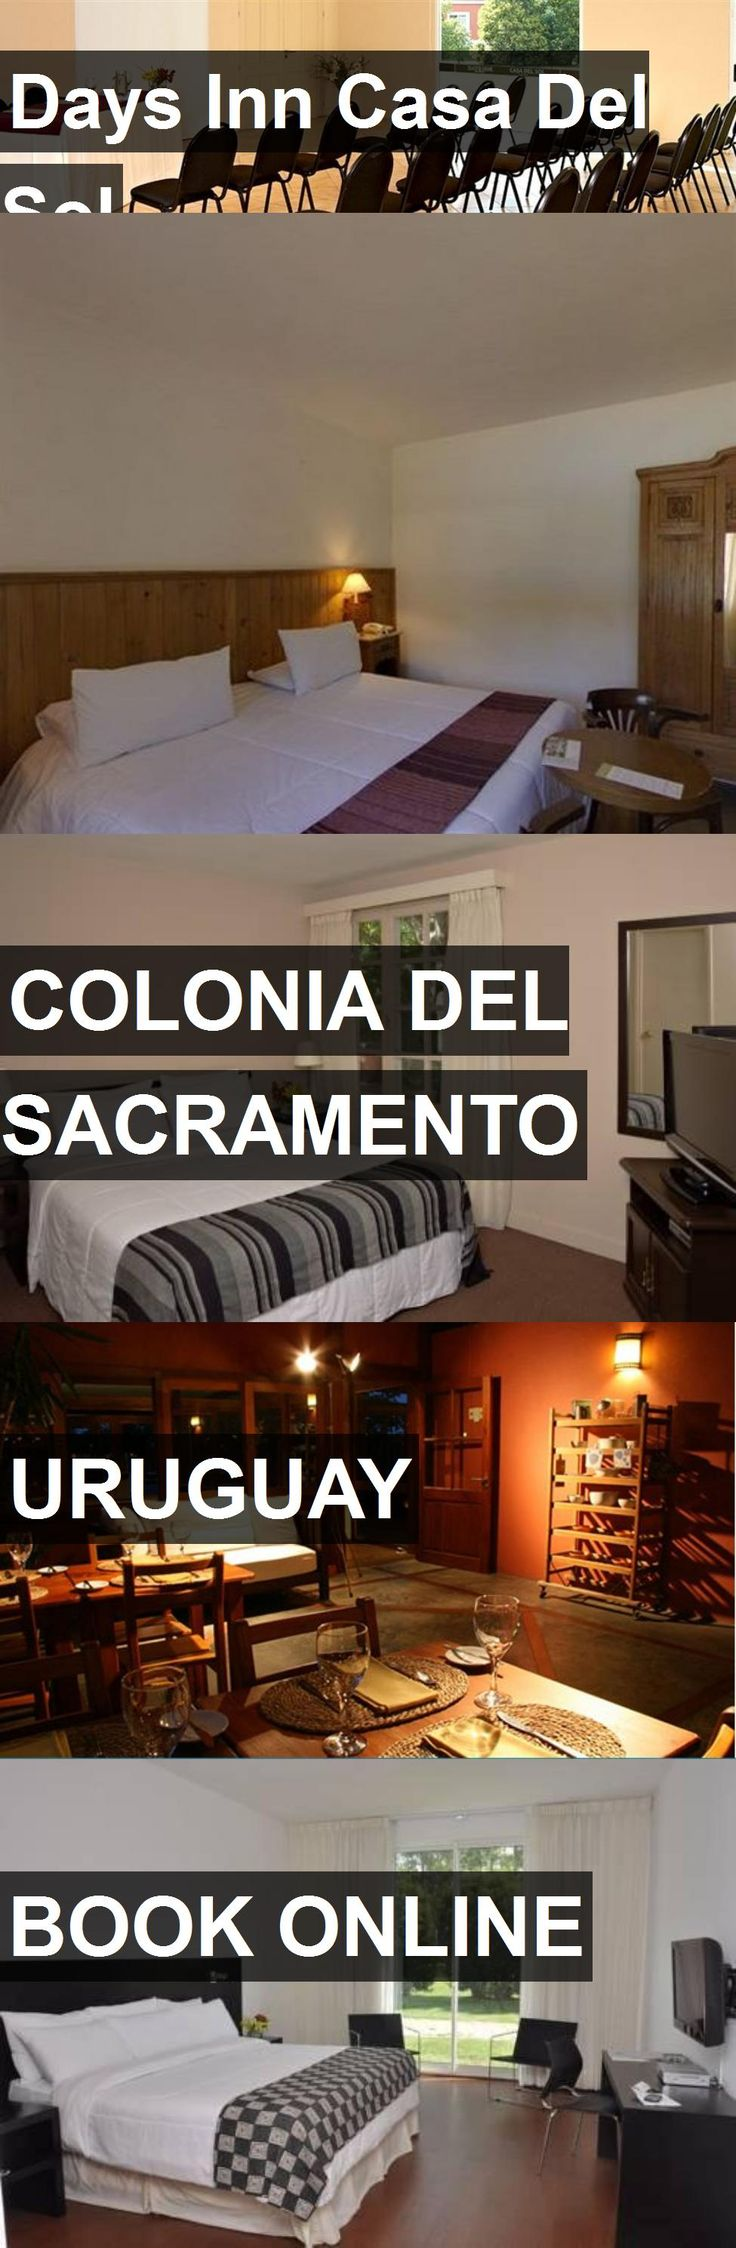 Hotel Days Inn Casa Del Sol in Colonia Del Sacramento, Uruguay. For more information, photos, reviews and best prices please follow the link. #Uruguay #ColoniaDelSacramento #travel #vacation #hotel